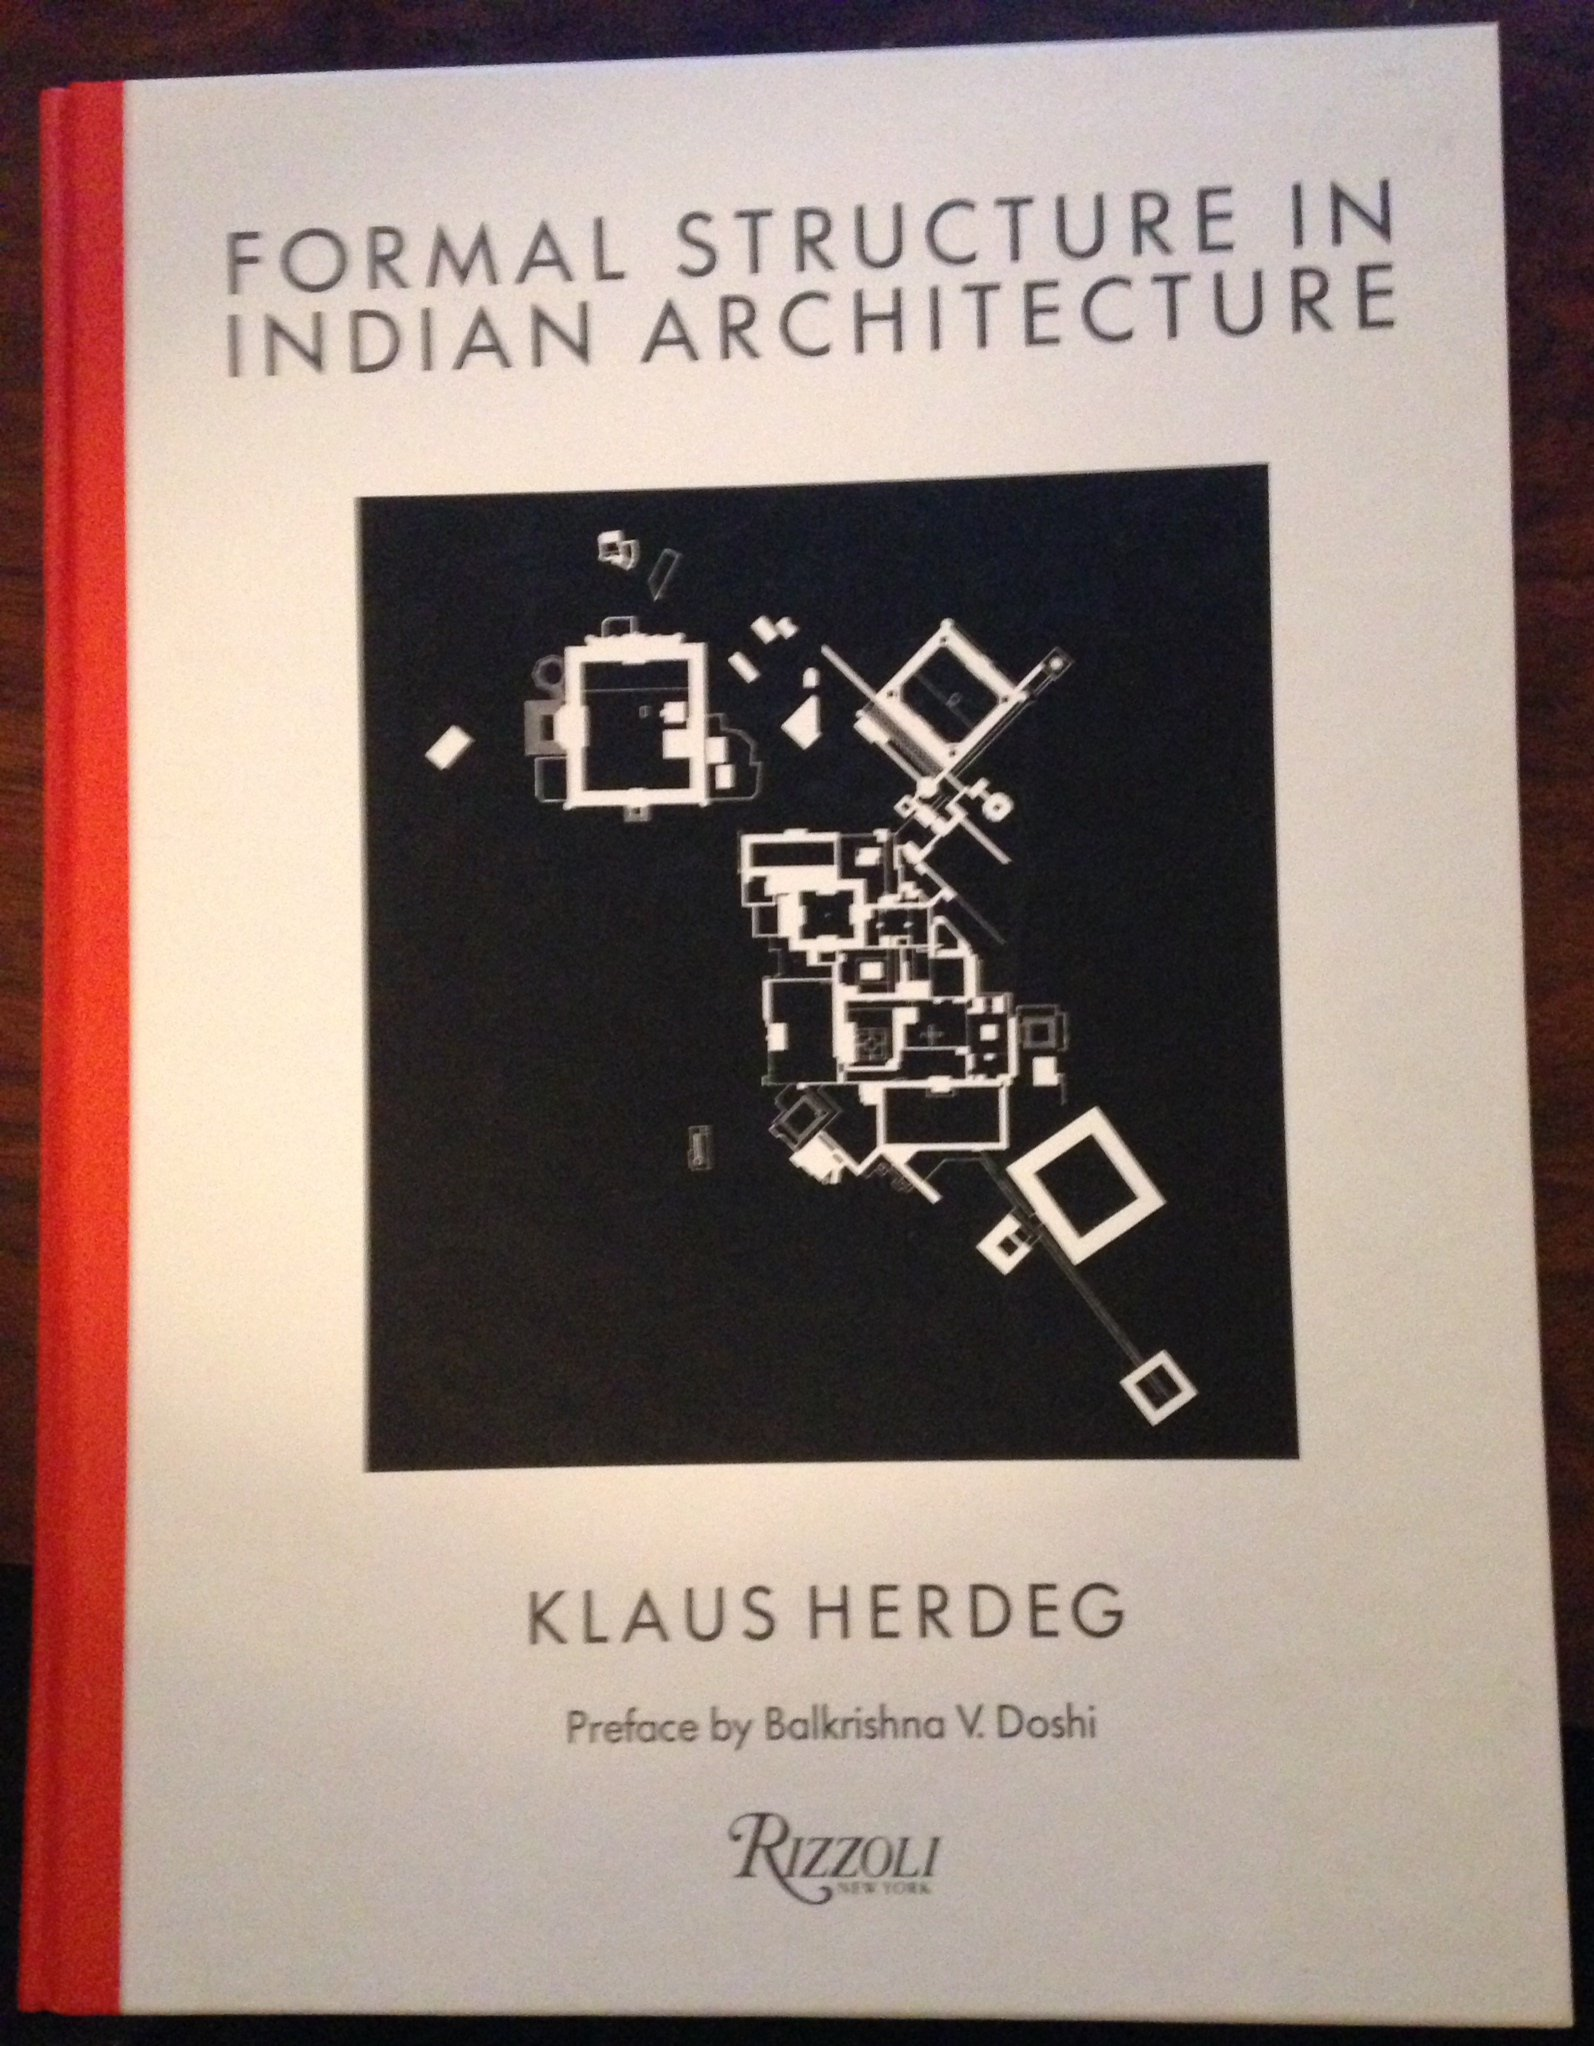 Formal Structure In Indian Architecture: Klaus Herdeg